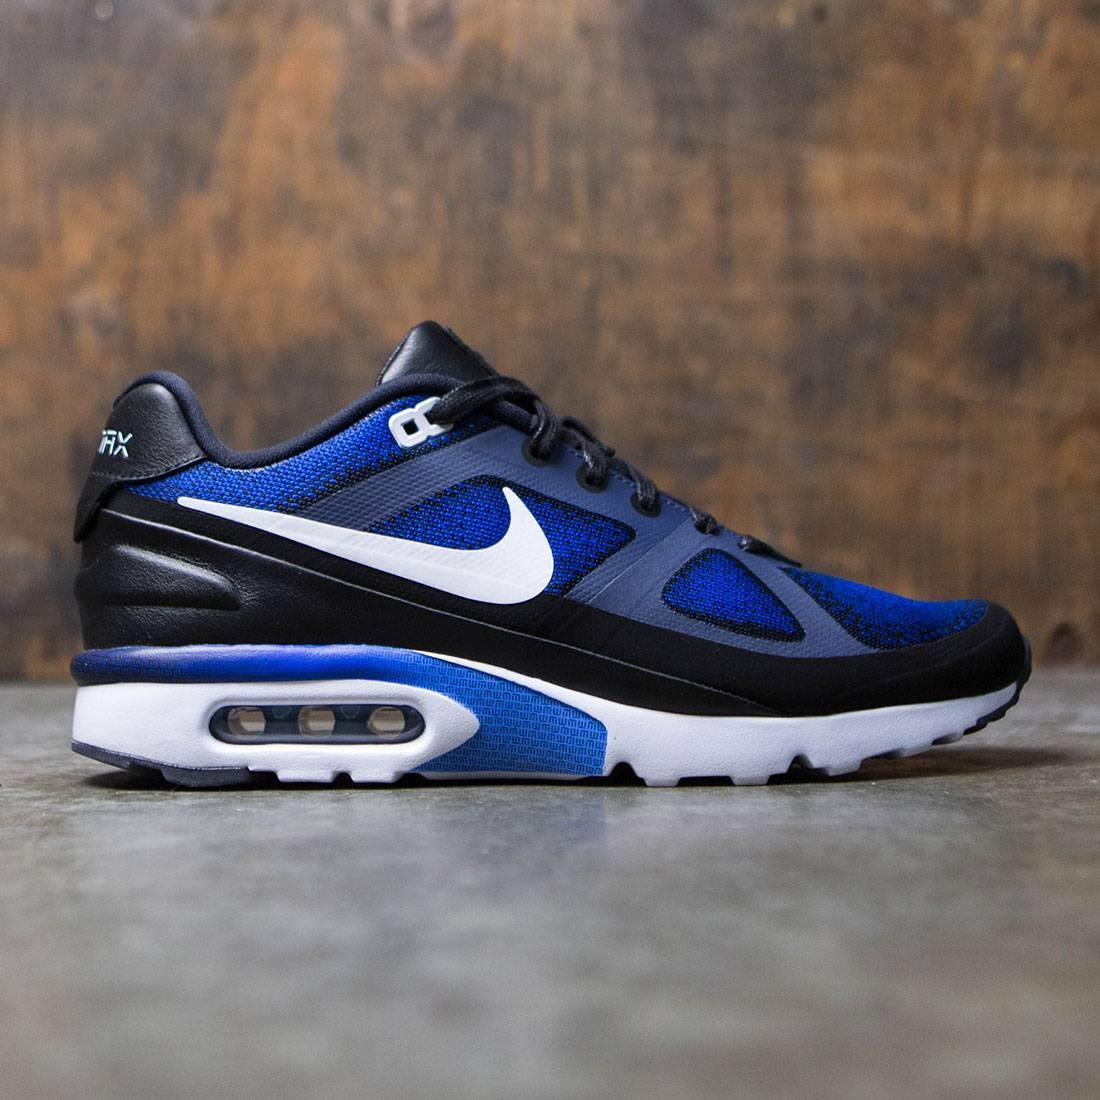 Nike Men Air Max Mp Ultra (deep royal blue / white / black)